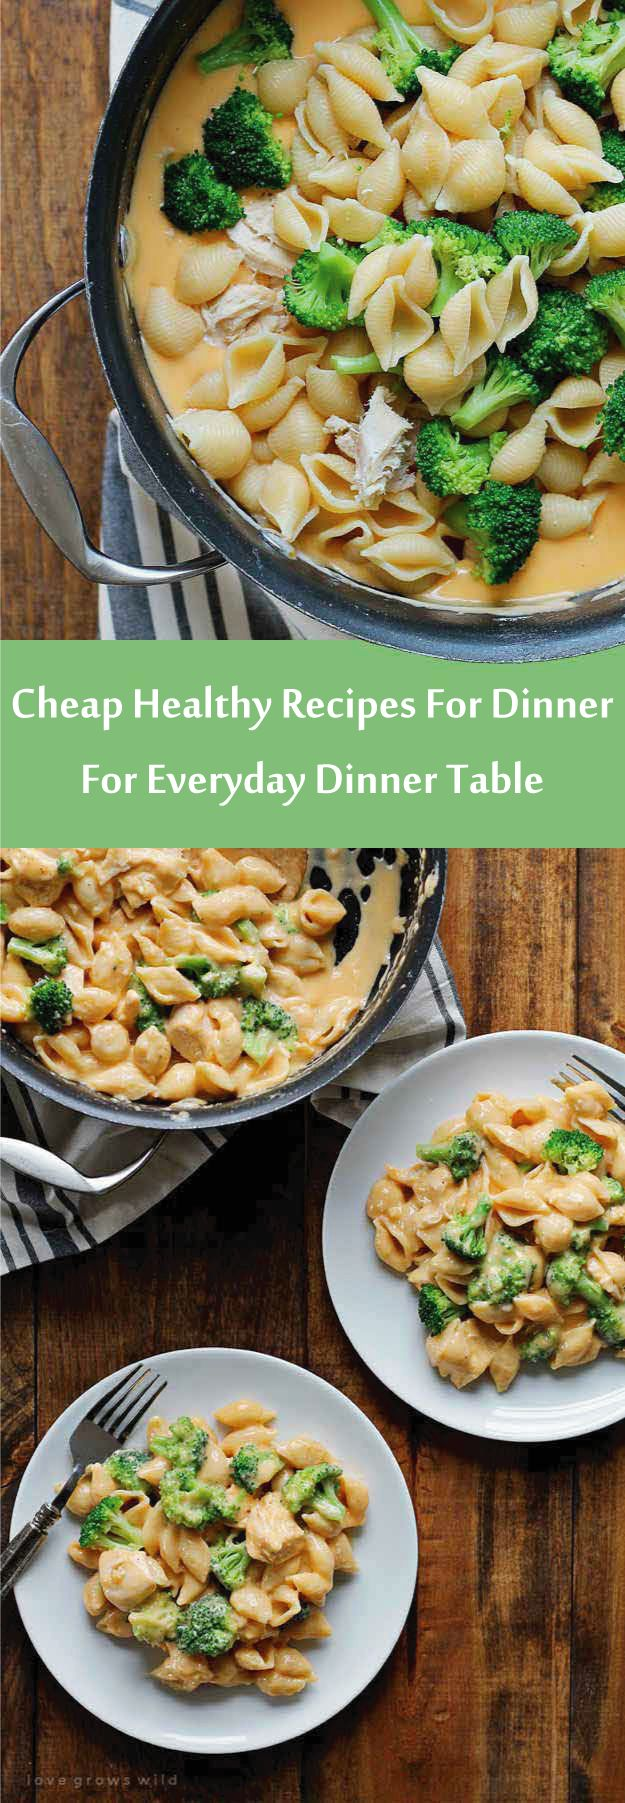 Cheap healthy meals - Cheap Healthy Recipes For Dinner For Everyday Dinner Table